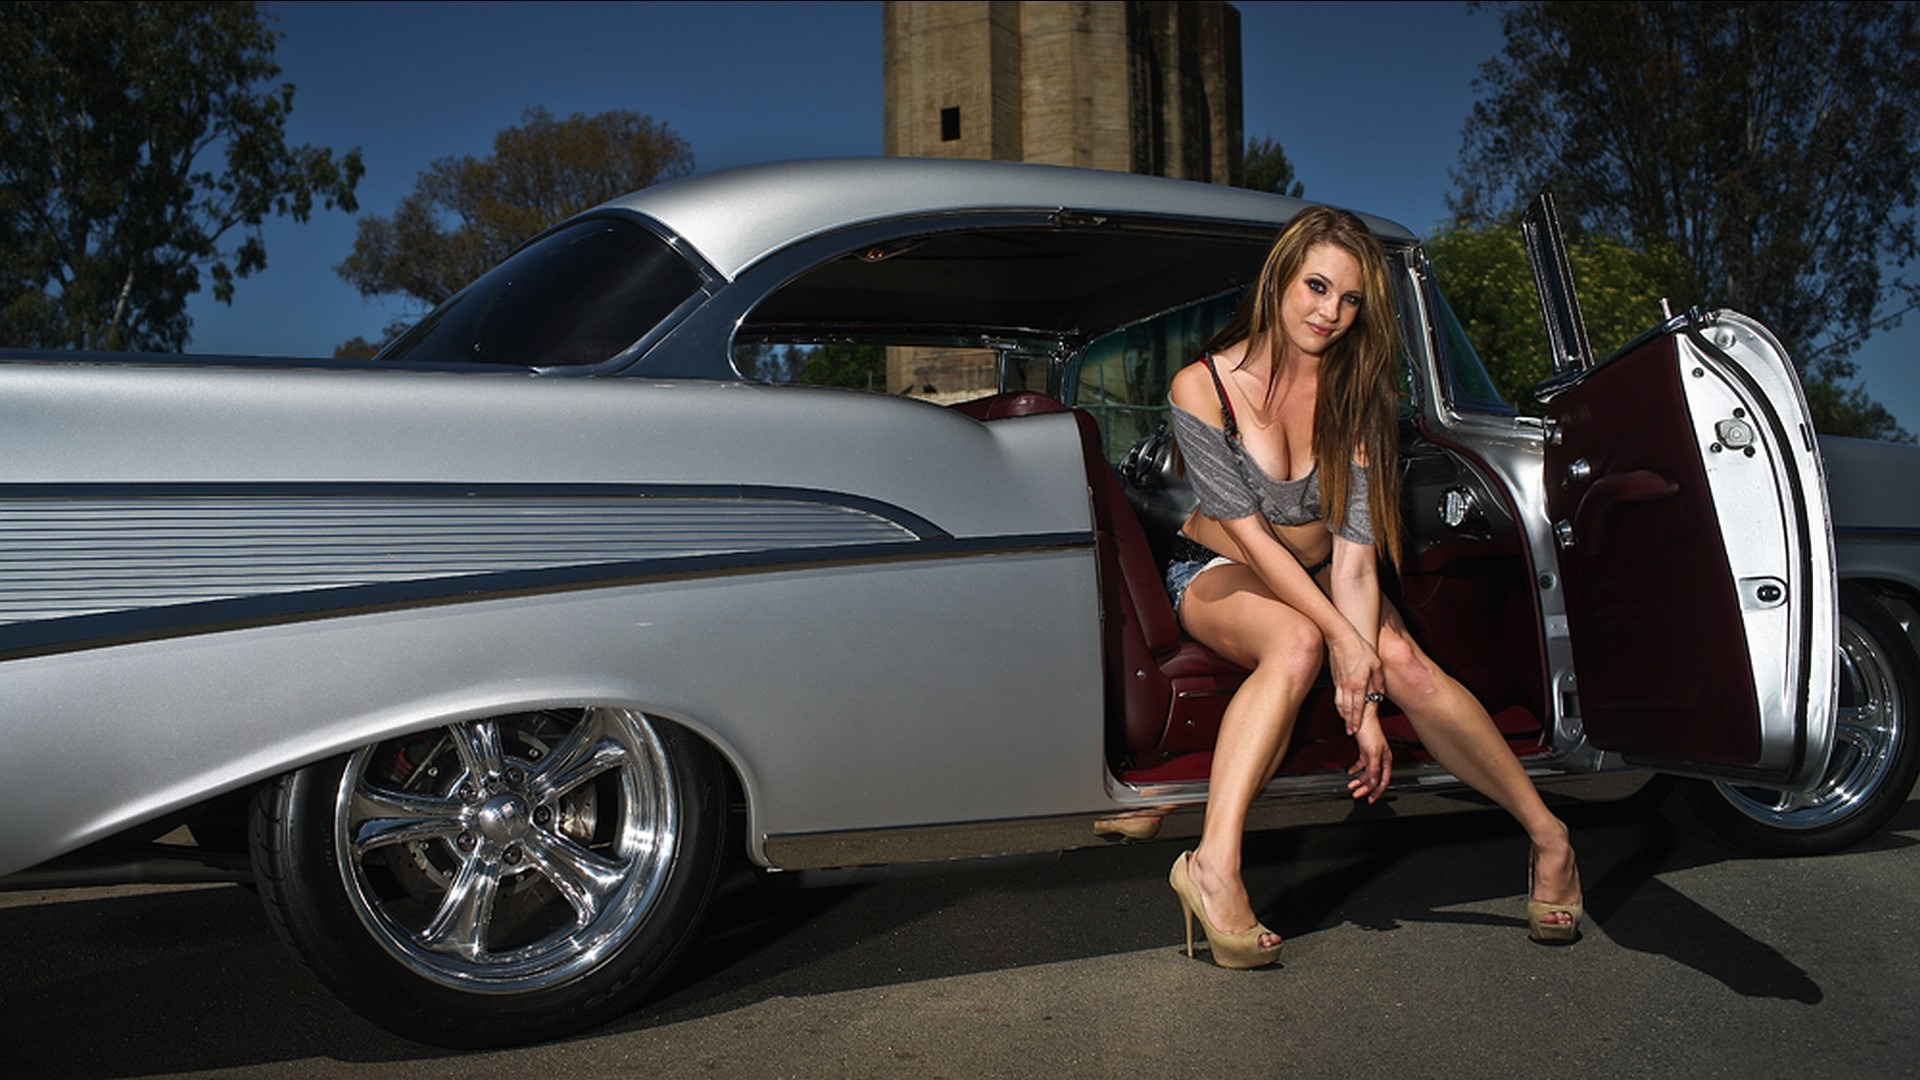 … Girls With Car (1) …